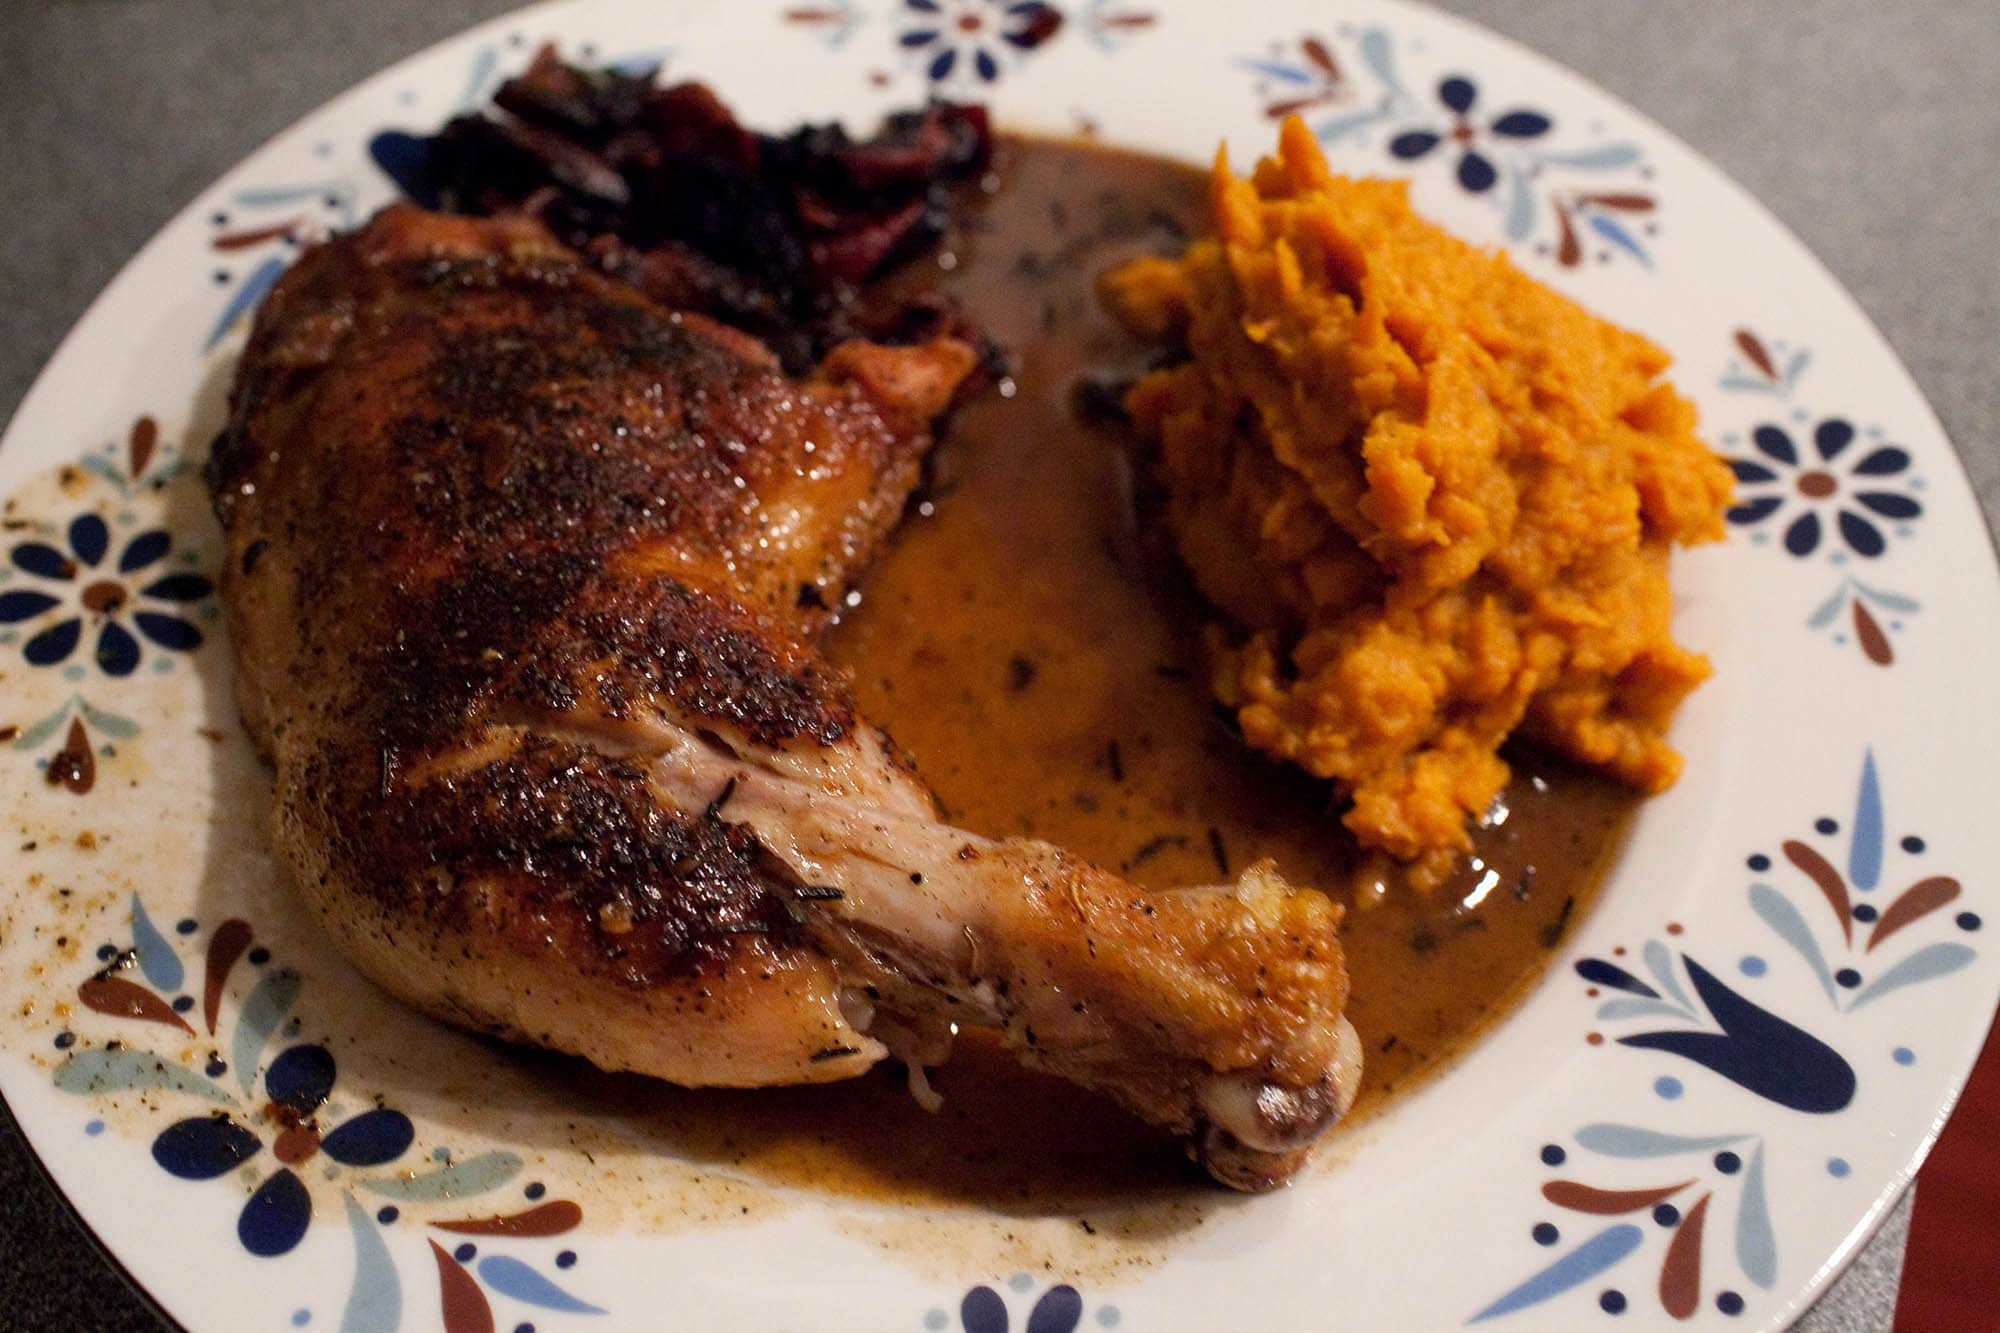 Pan roasted chicken and mashed sweet potatoes.